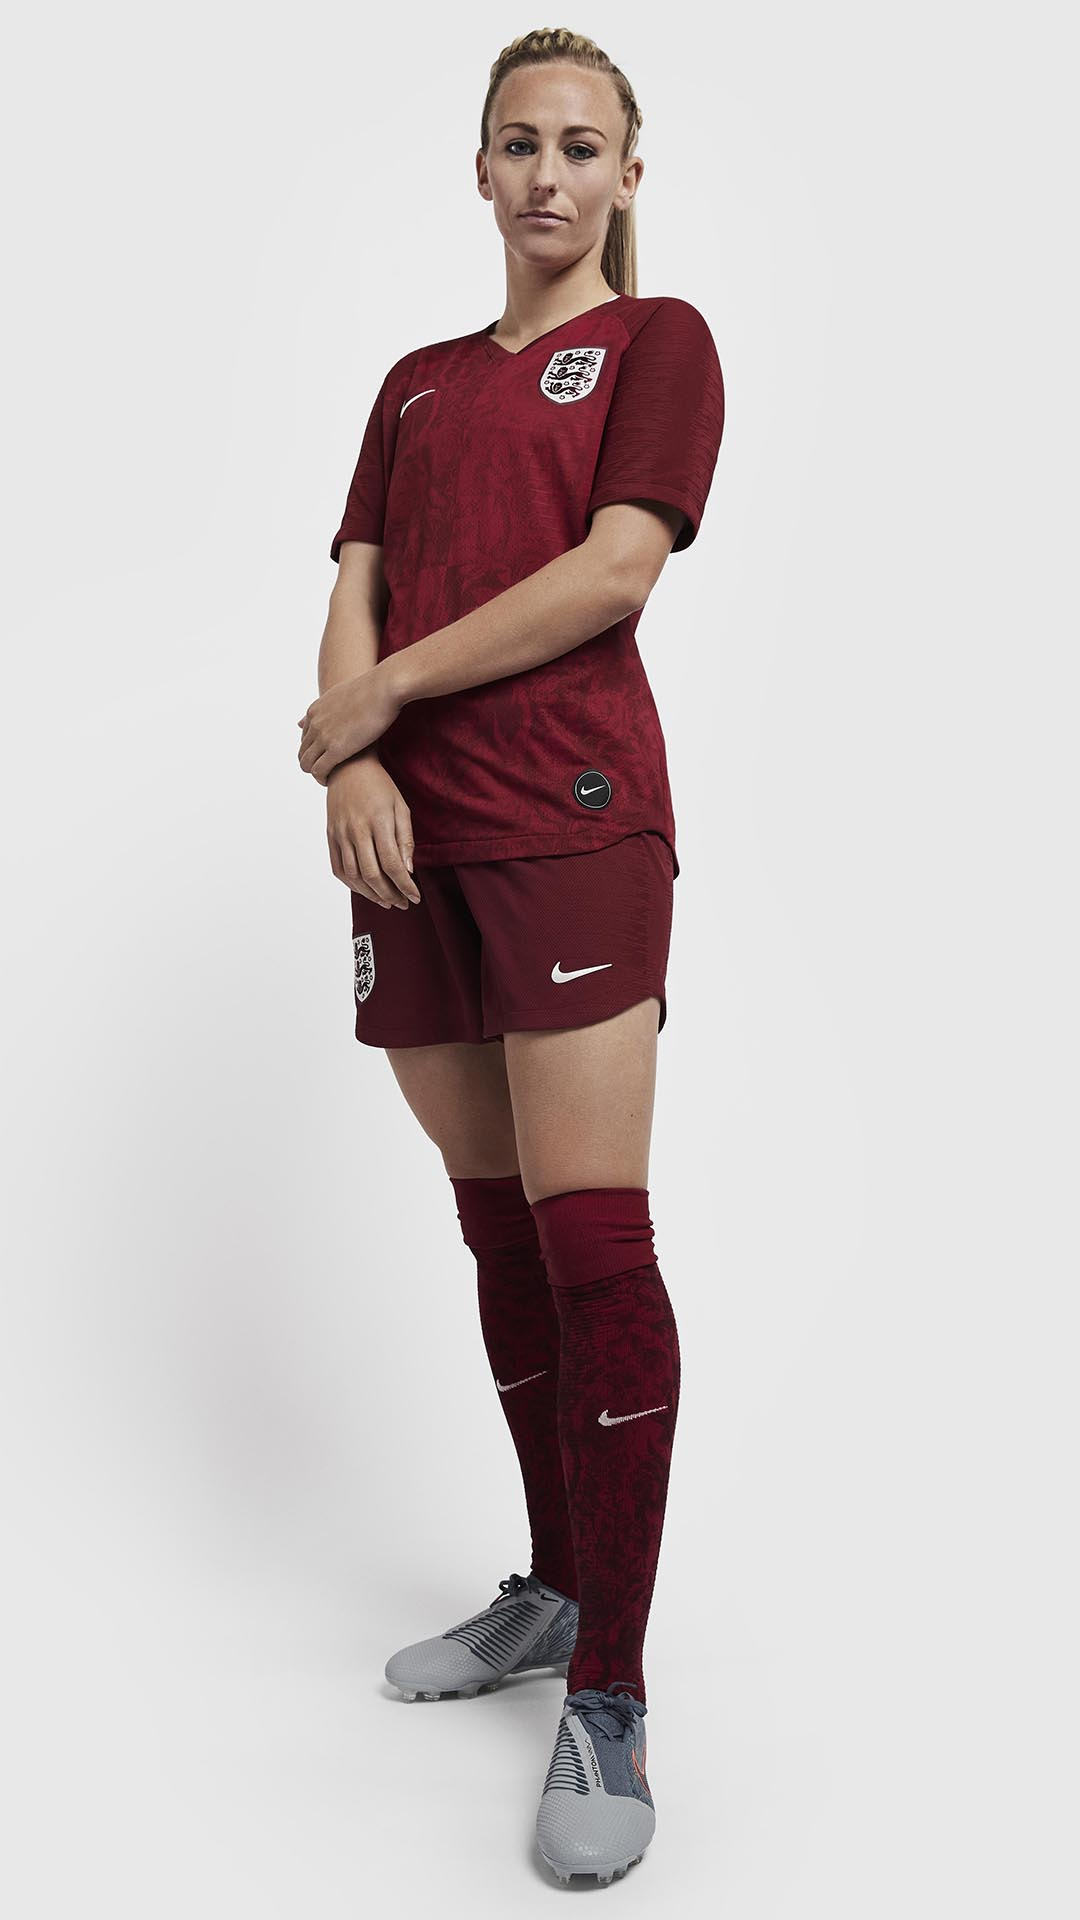 Nike_National_Team_Kit_England_7.jpg